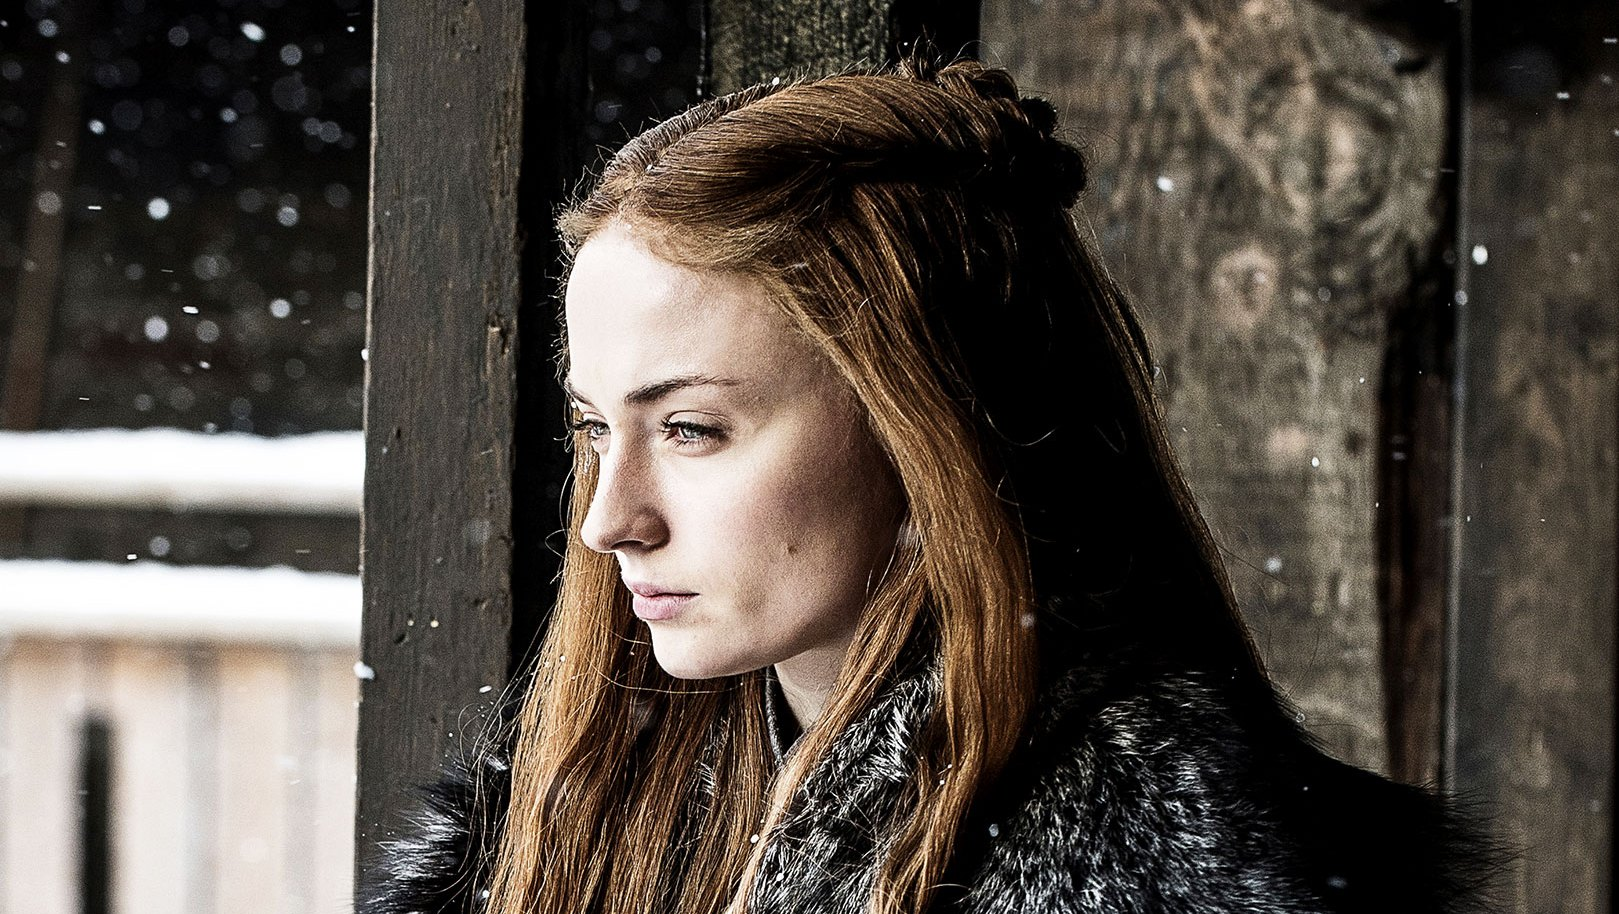 Sophie Turner Revealed That She Couldn't Wash Her Hair While Shooting Certain Seasons of Game of Thrones